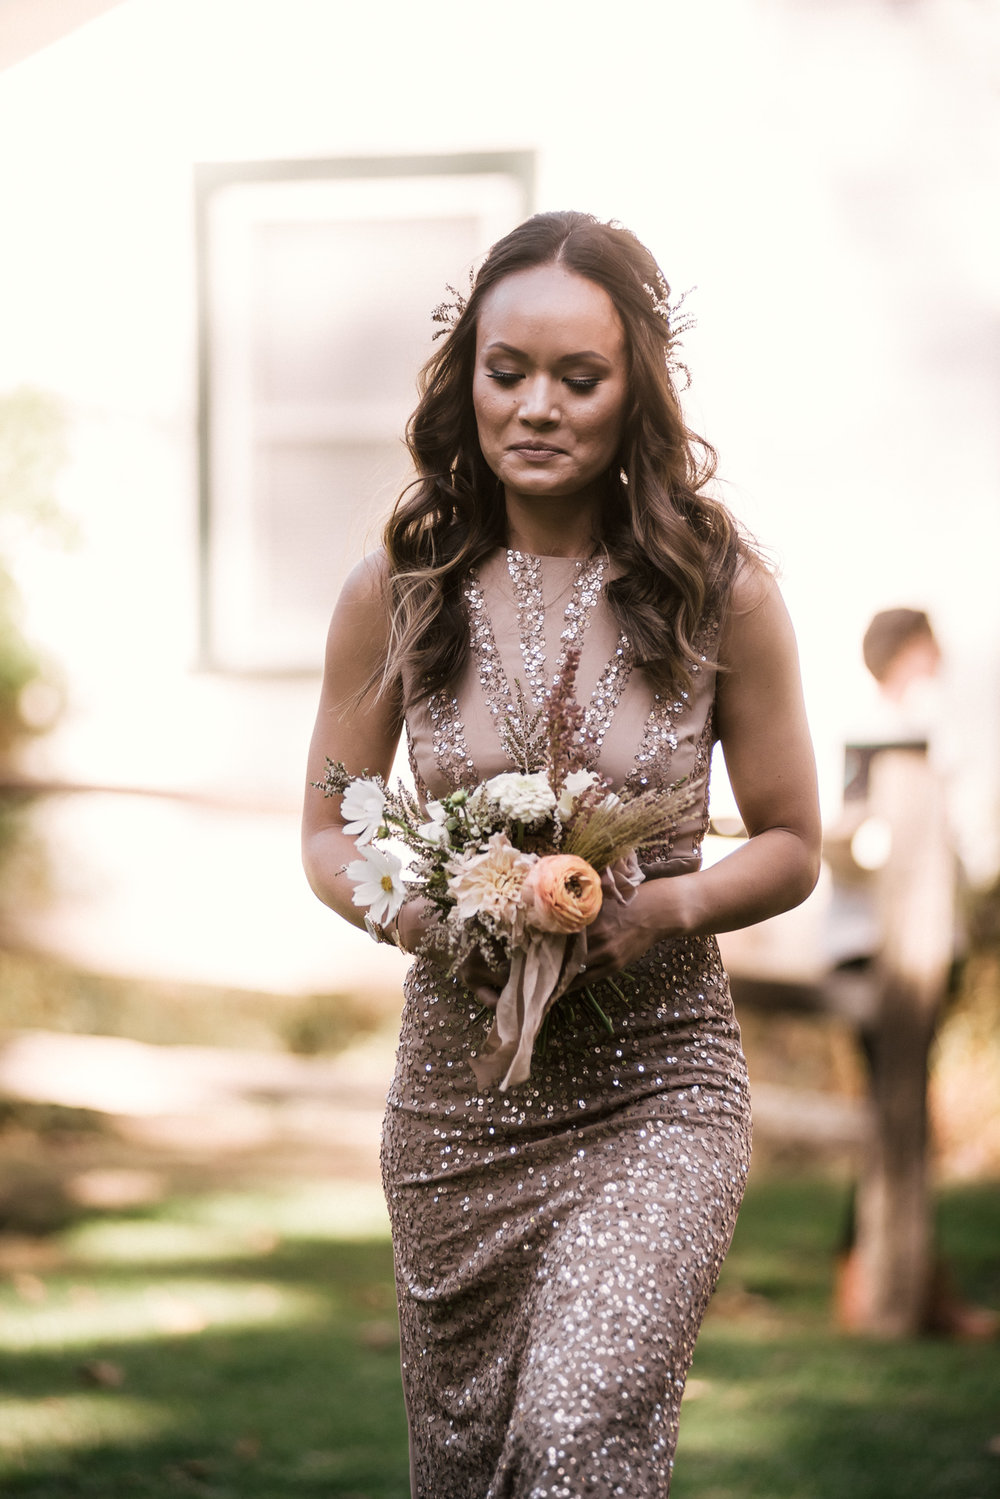 bridesmaid walks down the aisle with her bouquet shot by wedding photographer at the charming St. George Hotel in Volcano California